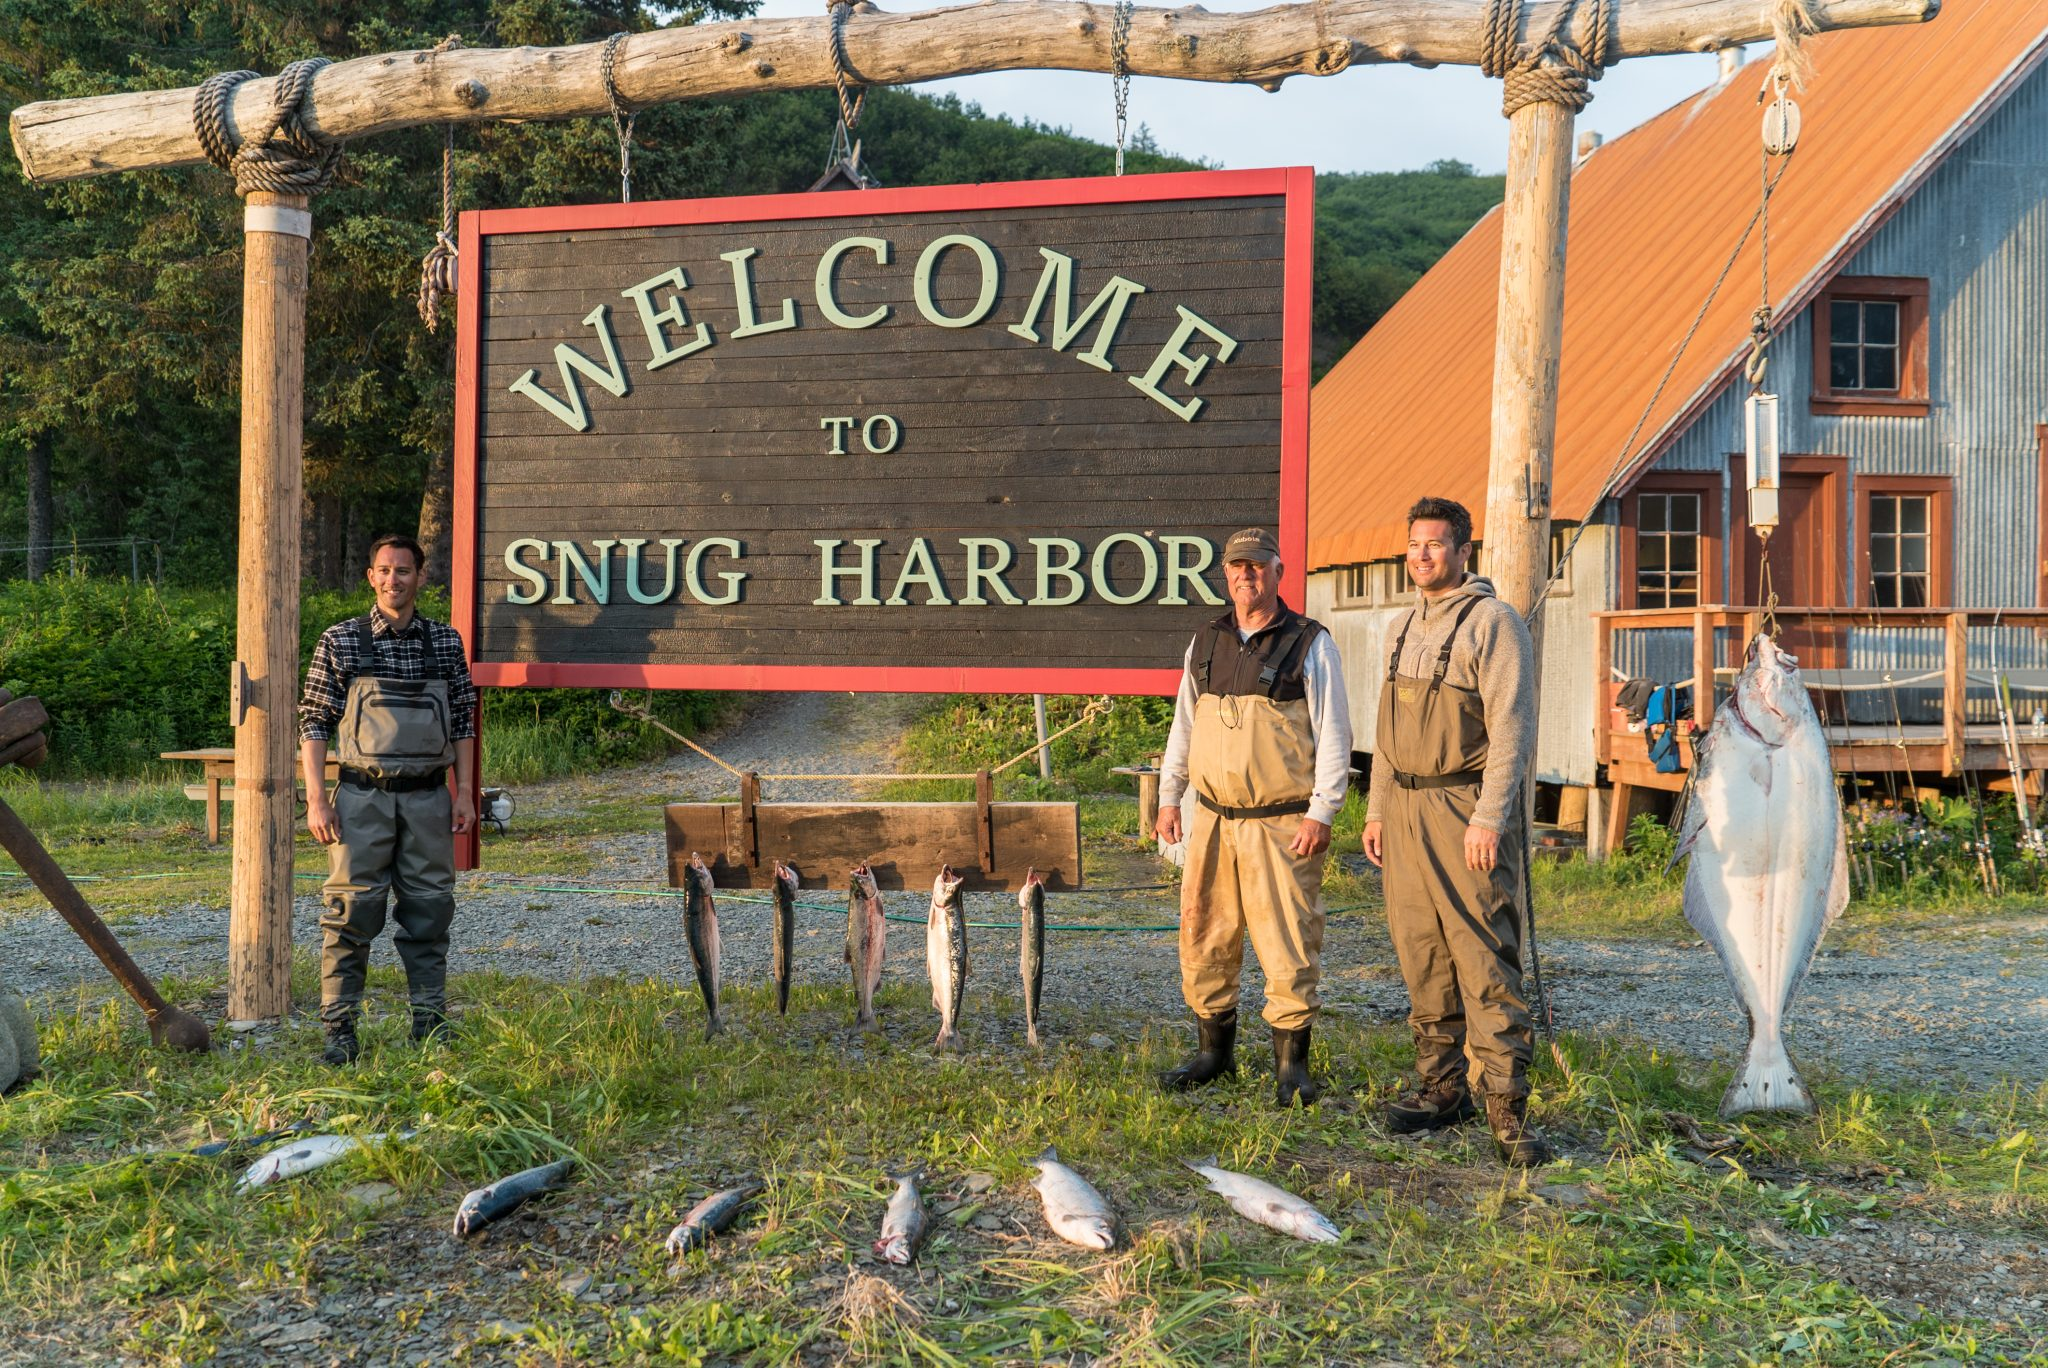 alaska-family-vacation-fishing-salmon-halibut-snug-harbor-DSC06914